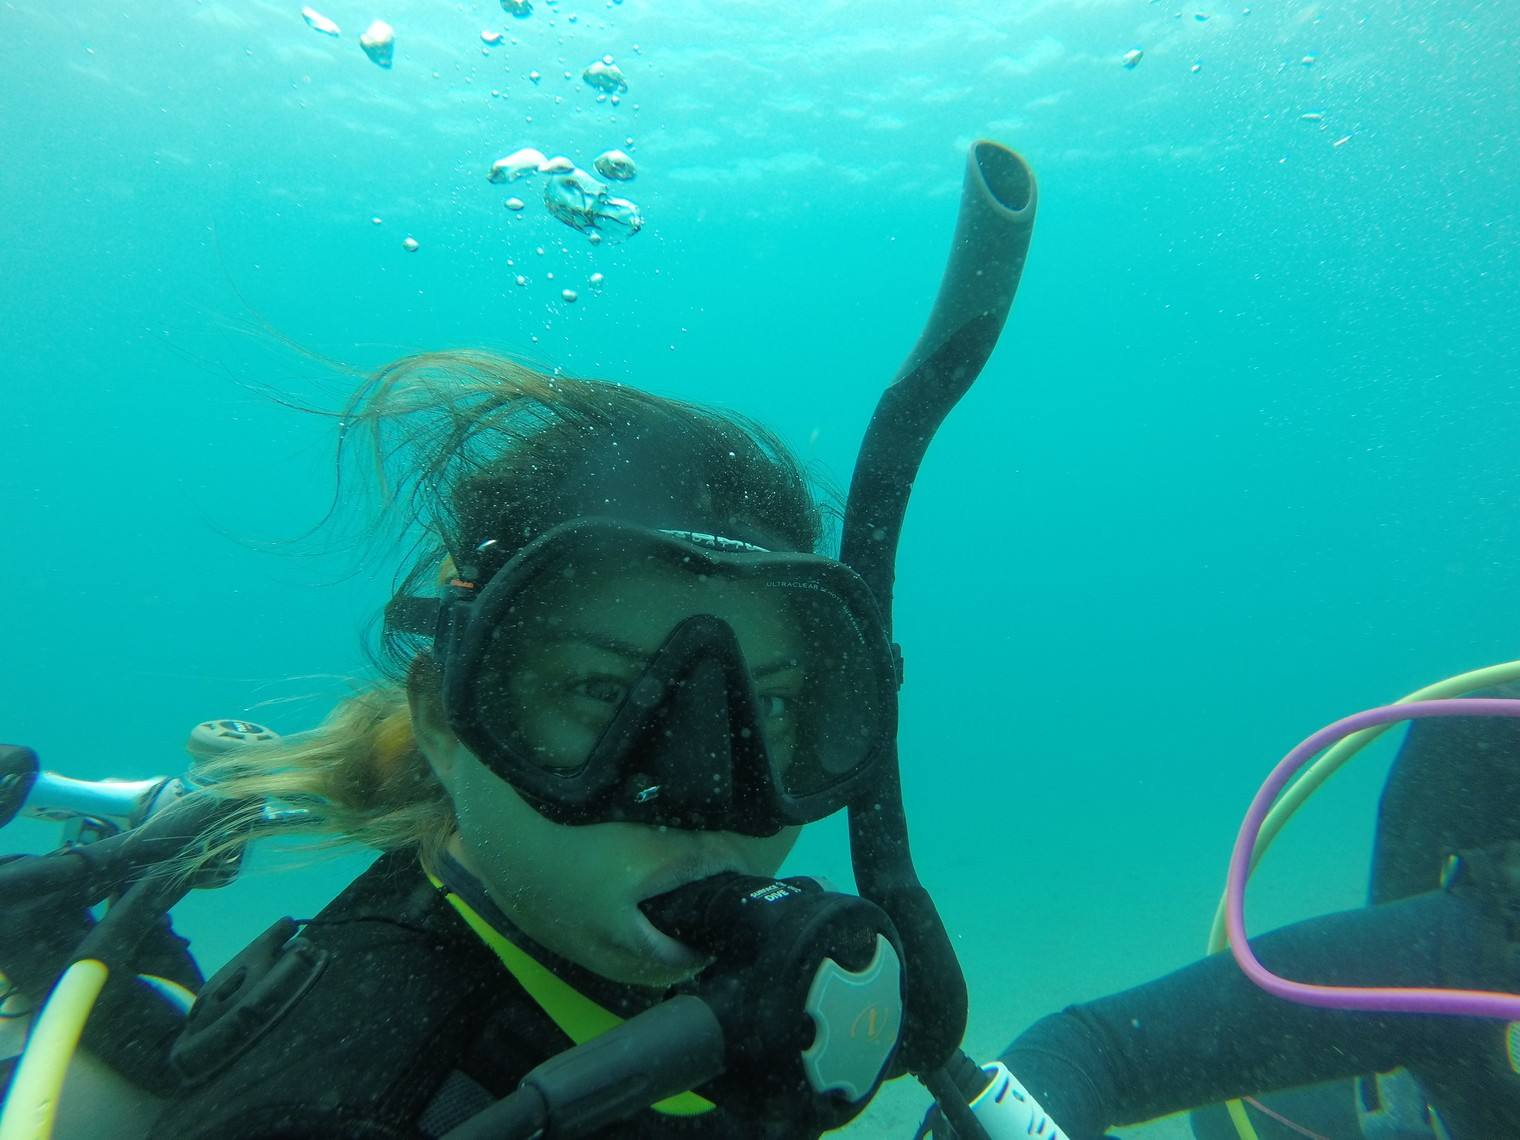 PADI Discovery Dive with Pura Vida Divers